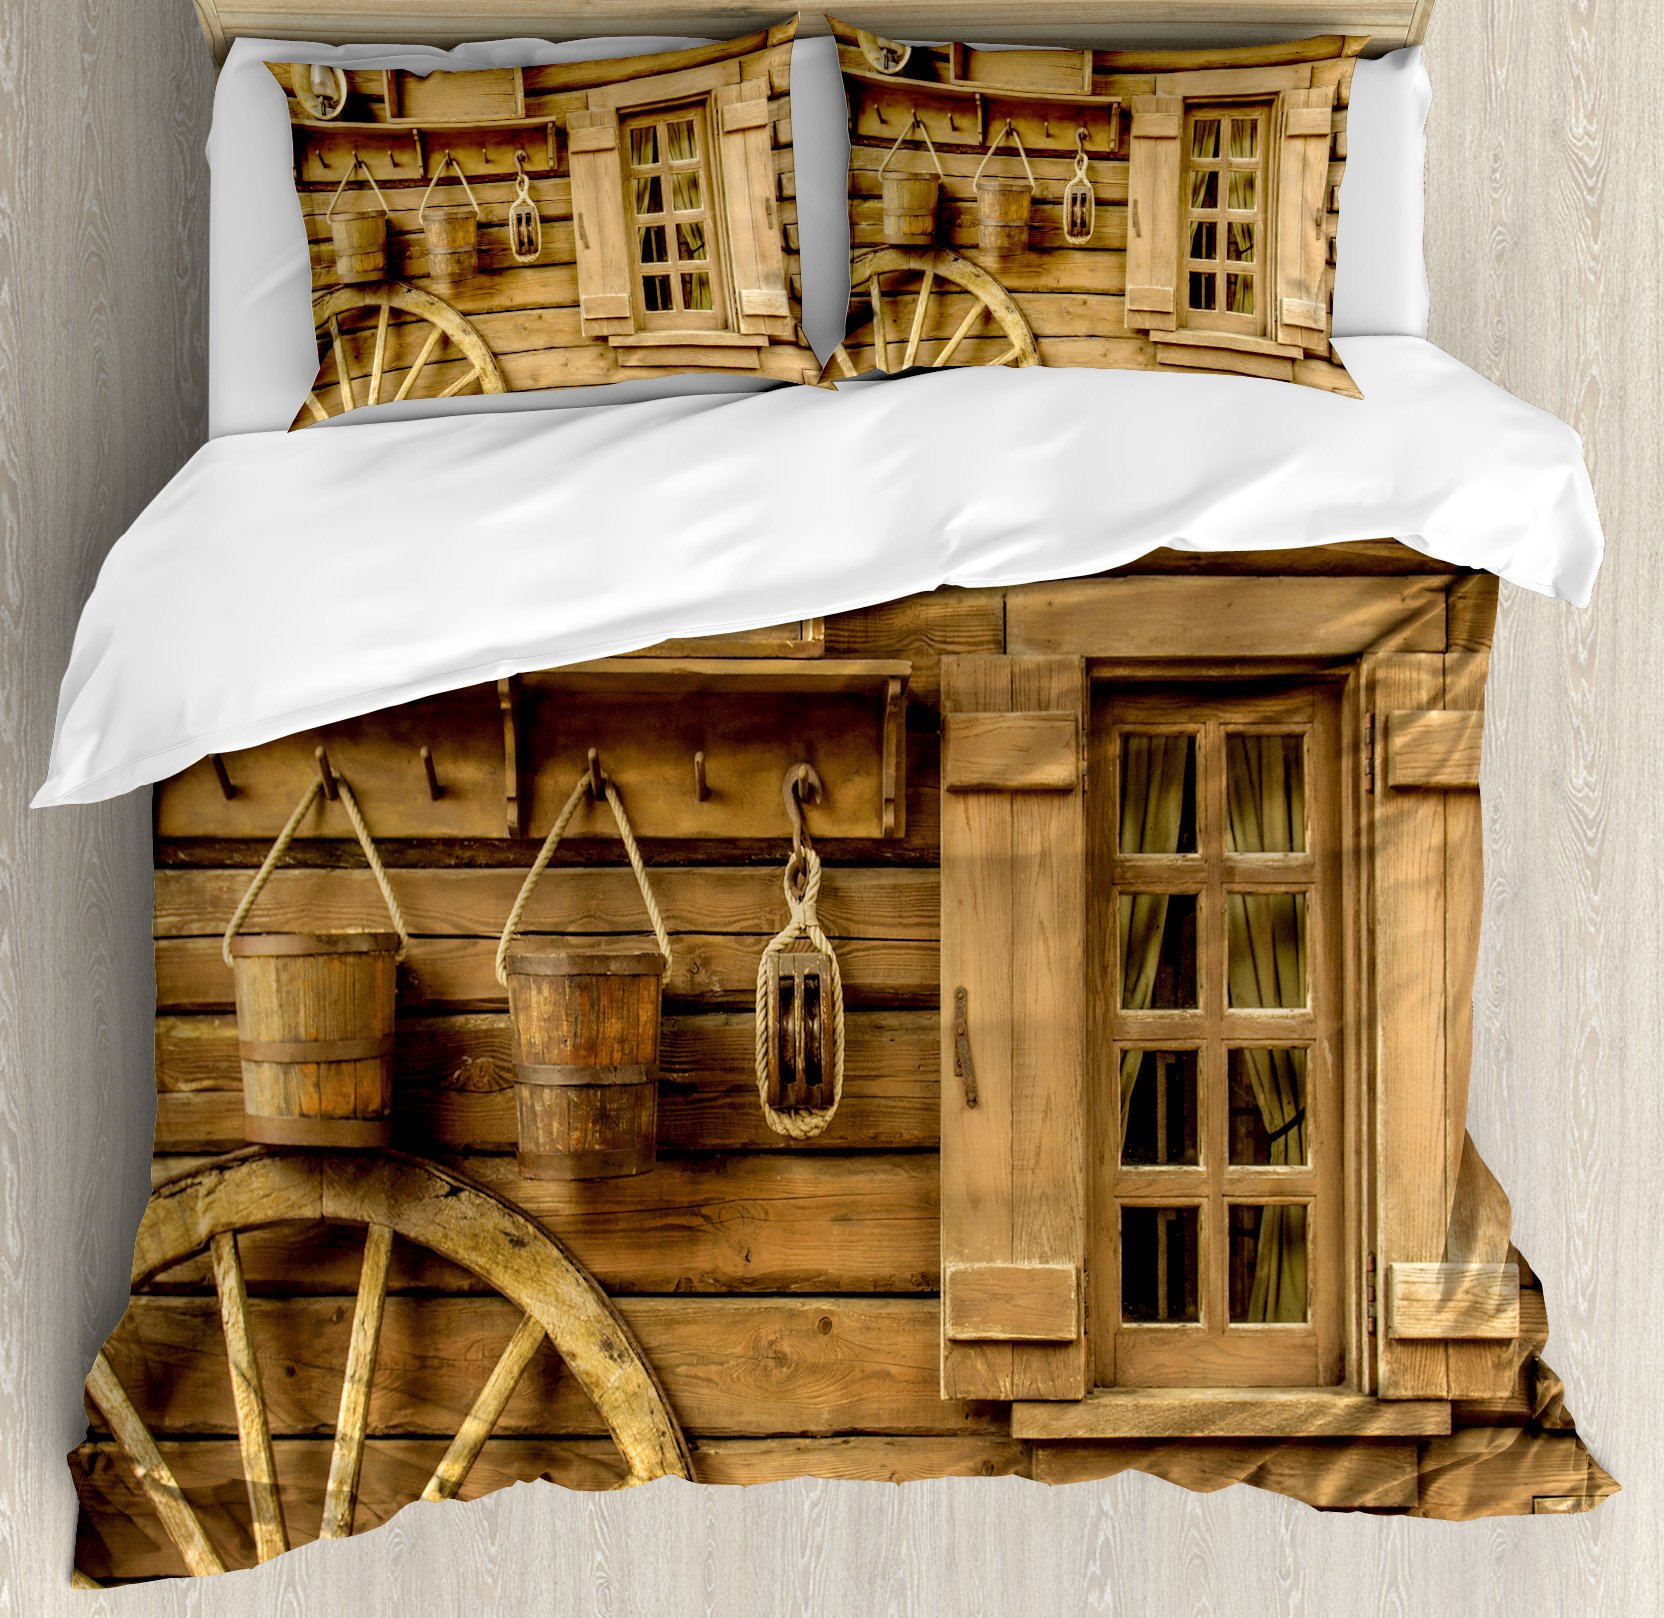 Western Decor King Size Duvet Cover Set by Ambesonne, Ancient old Wagon Wheel next to with Vintage Lantern Window and Retro Buckets, Decorative 3 Piece Bedding Set with 2 Pillow Shams